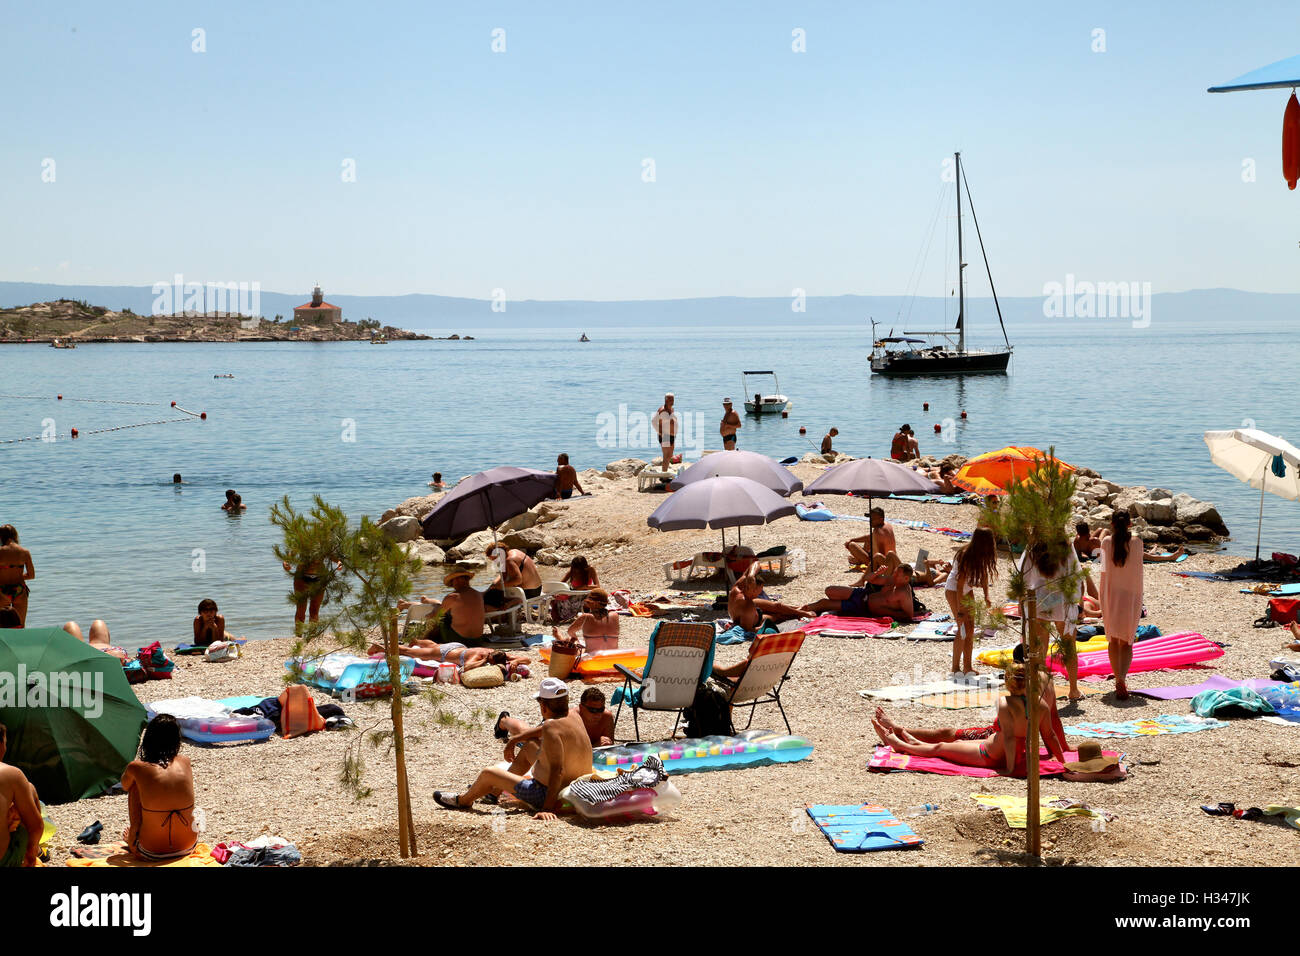 The City below the Biokovo mountains and the Adriatic sea gives lovely beaches - Stock Image